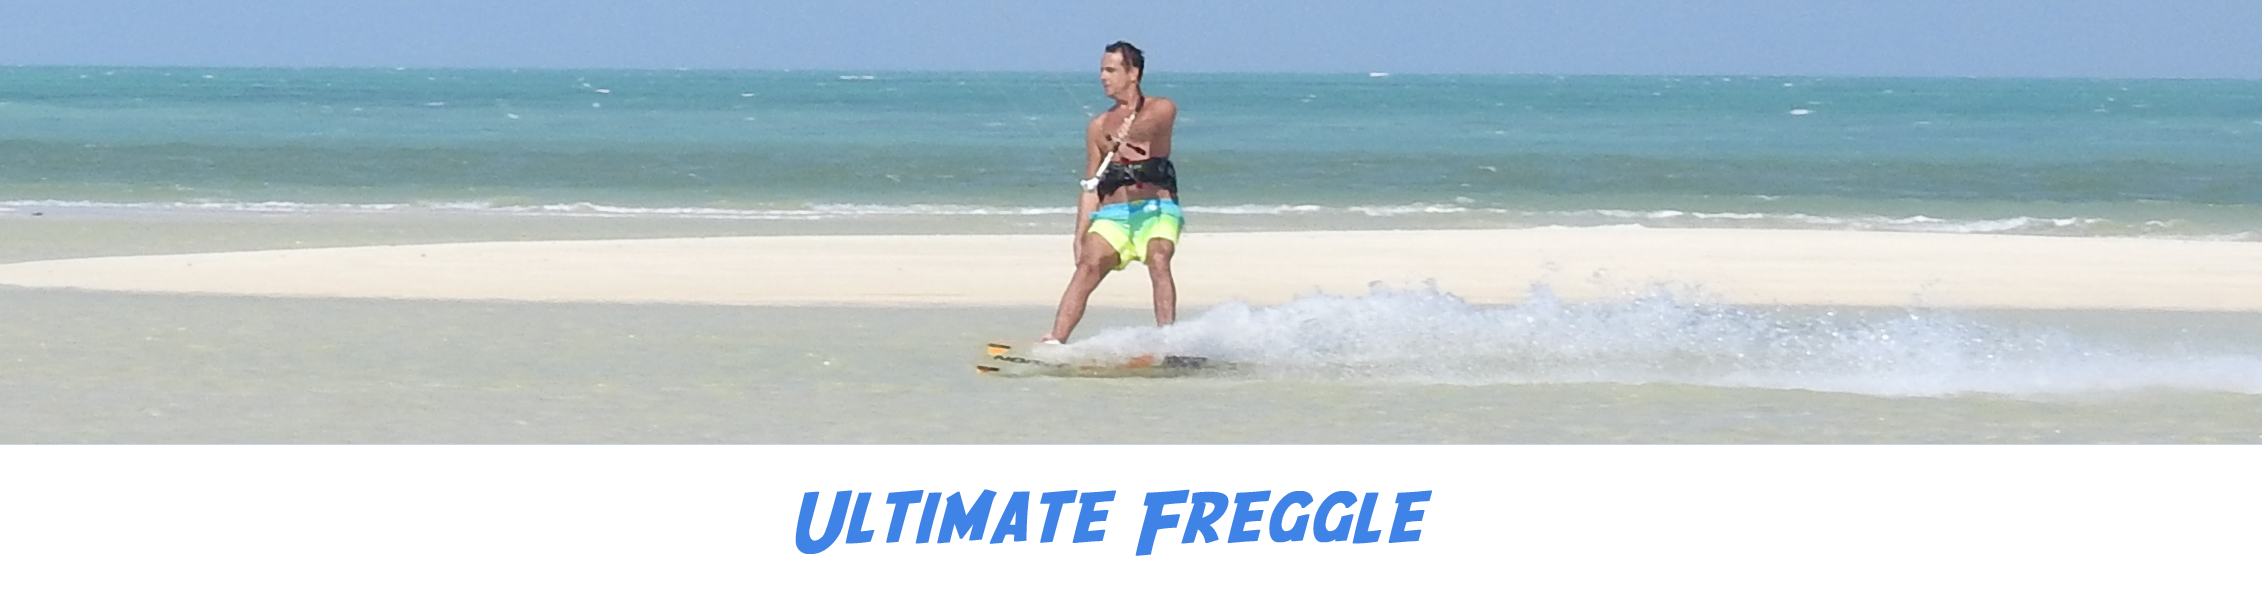 Ultimate Freggle